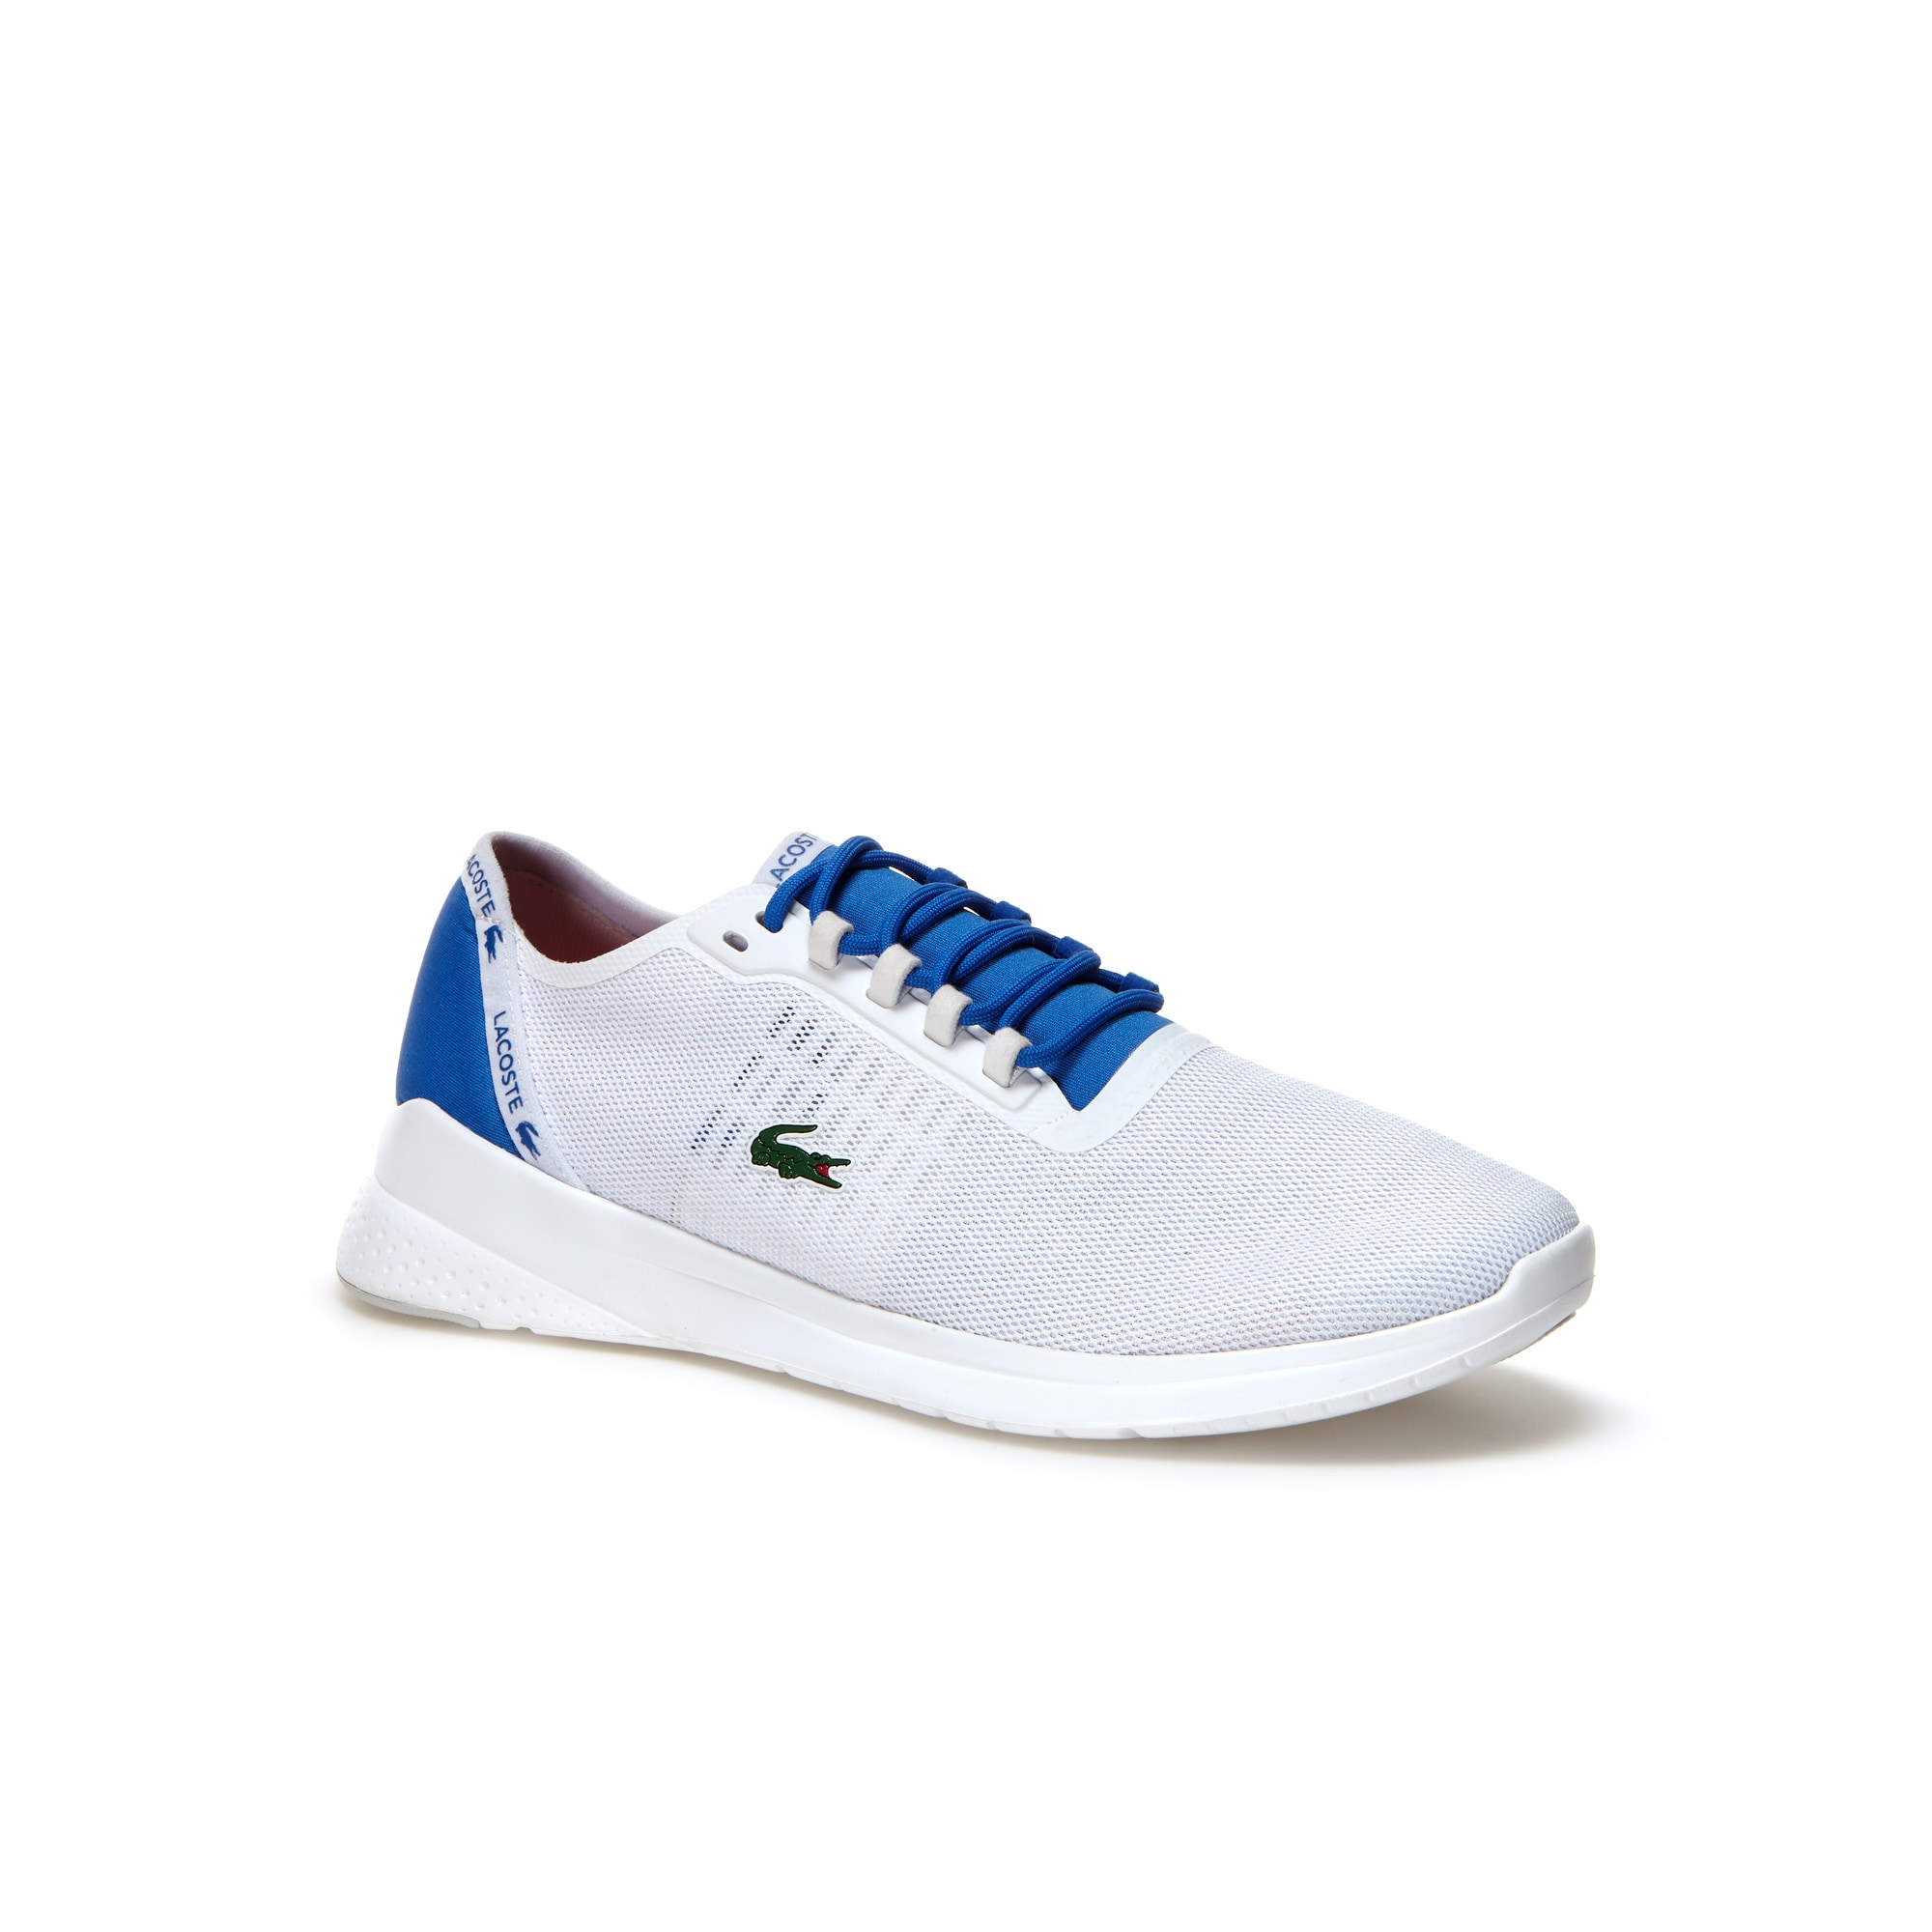 Lacoste MEN'S LT FIT TEXTILE SNEAKERS aDvJBgjh